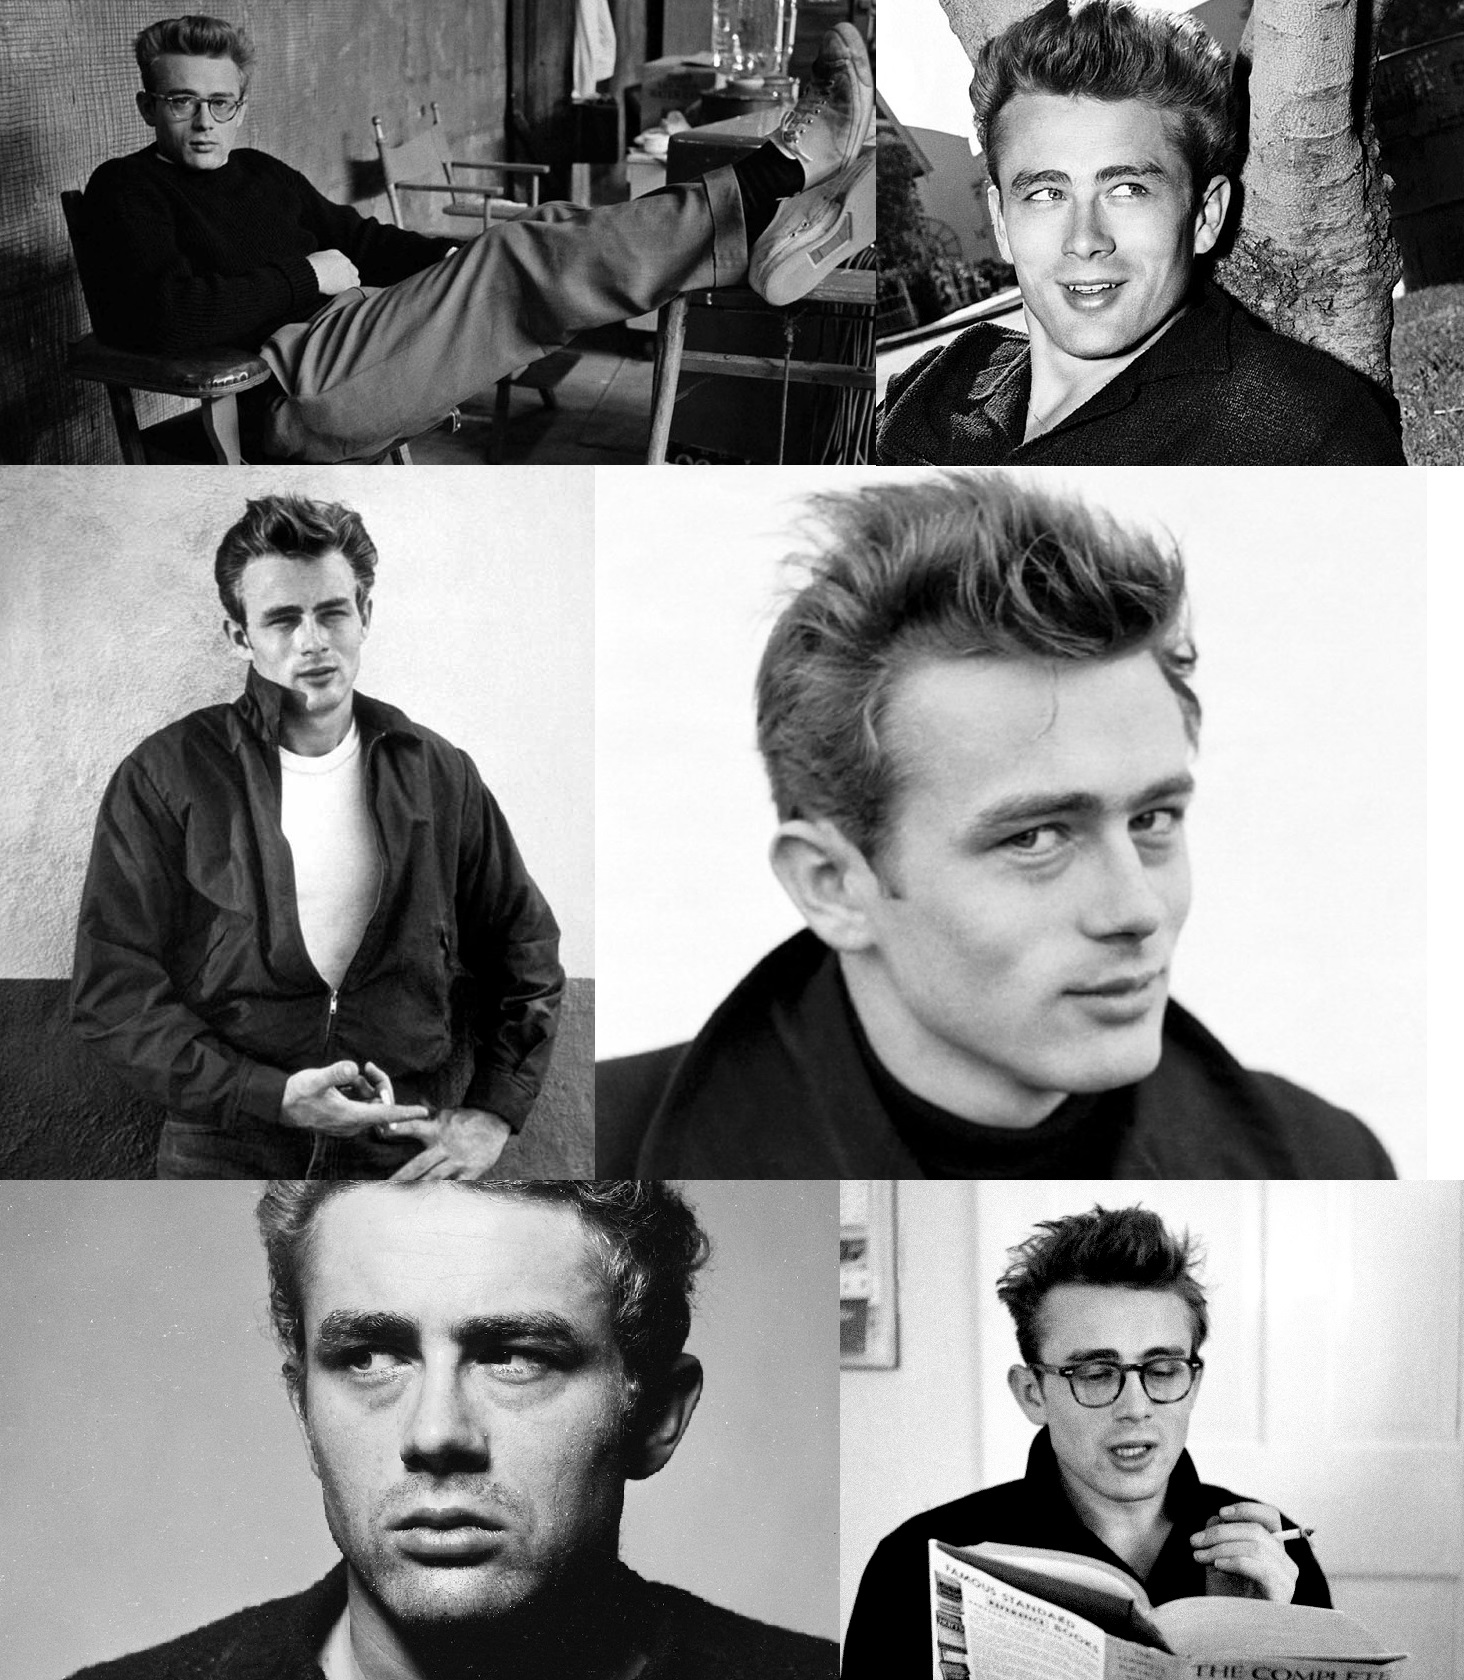 jamesdeancollage